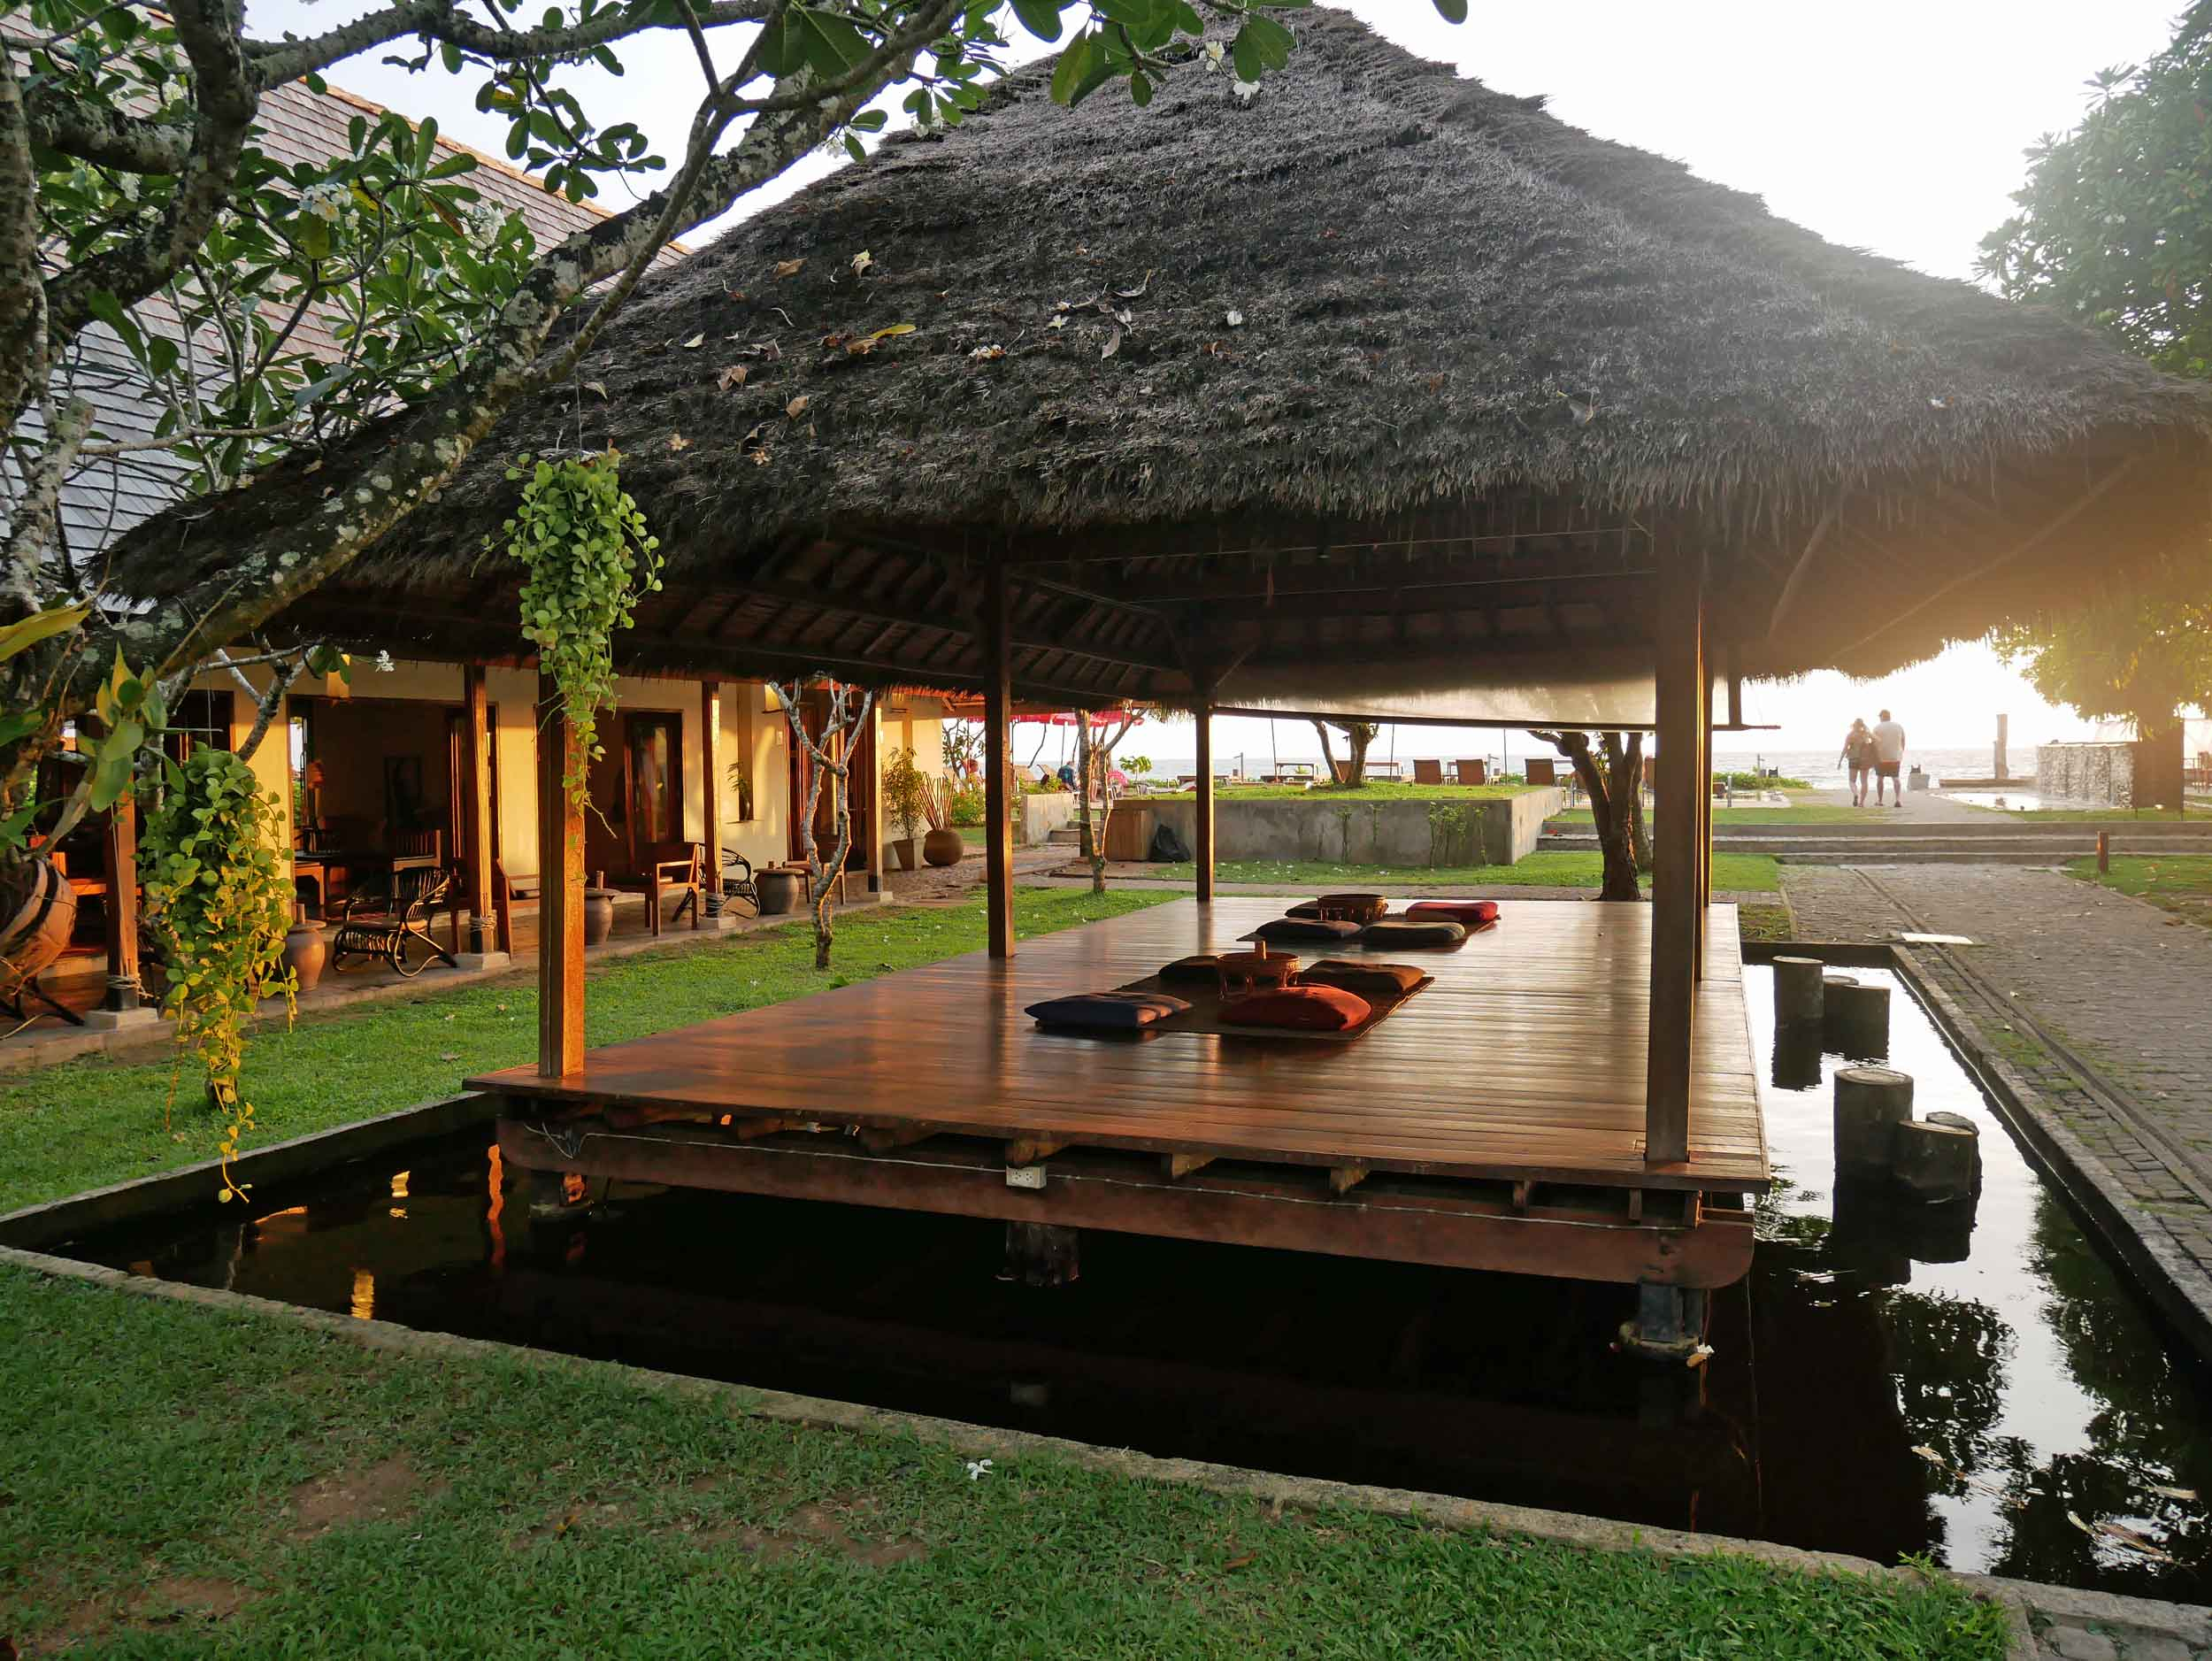 The Sri Lanta resort was our home on Ko Lanta, offering a scenic spot to recharge.